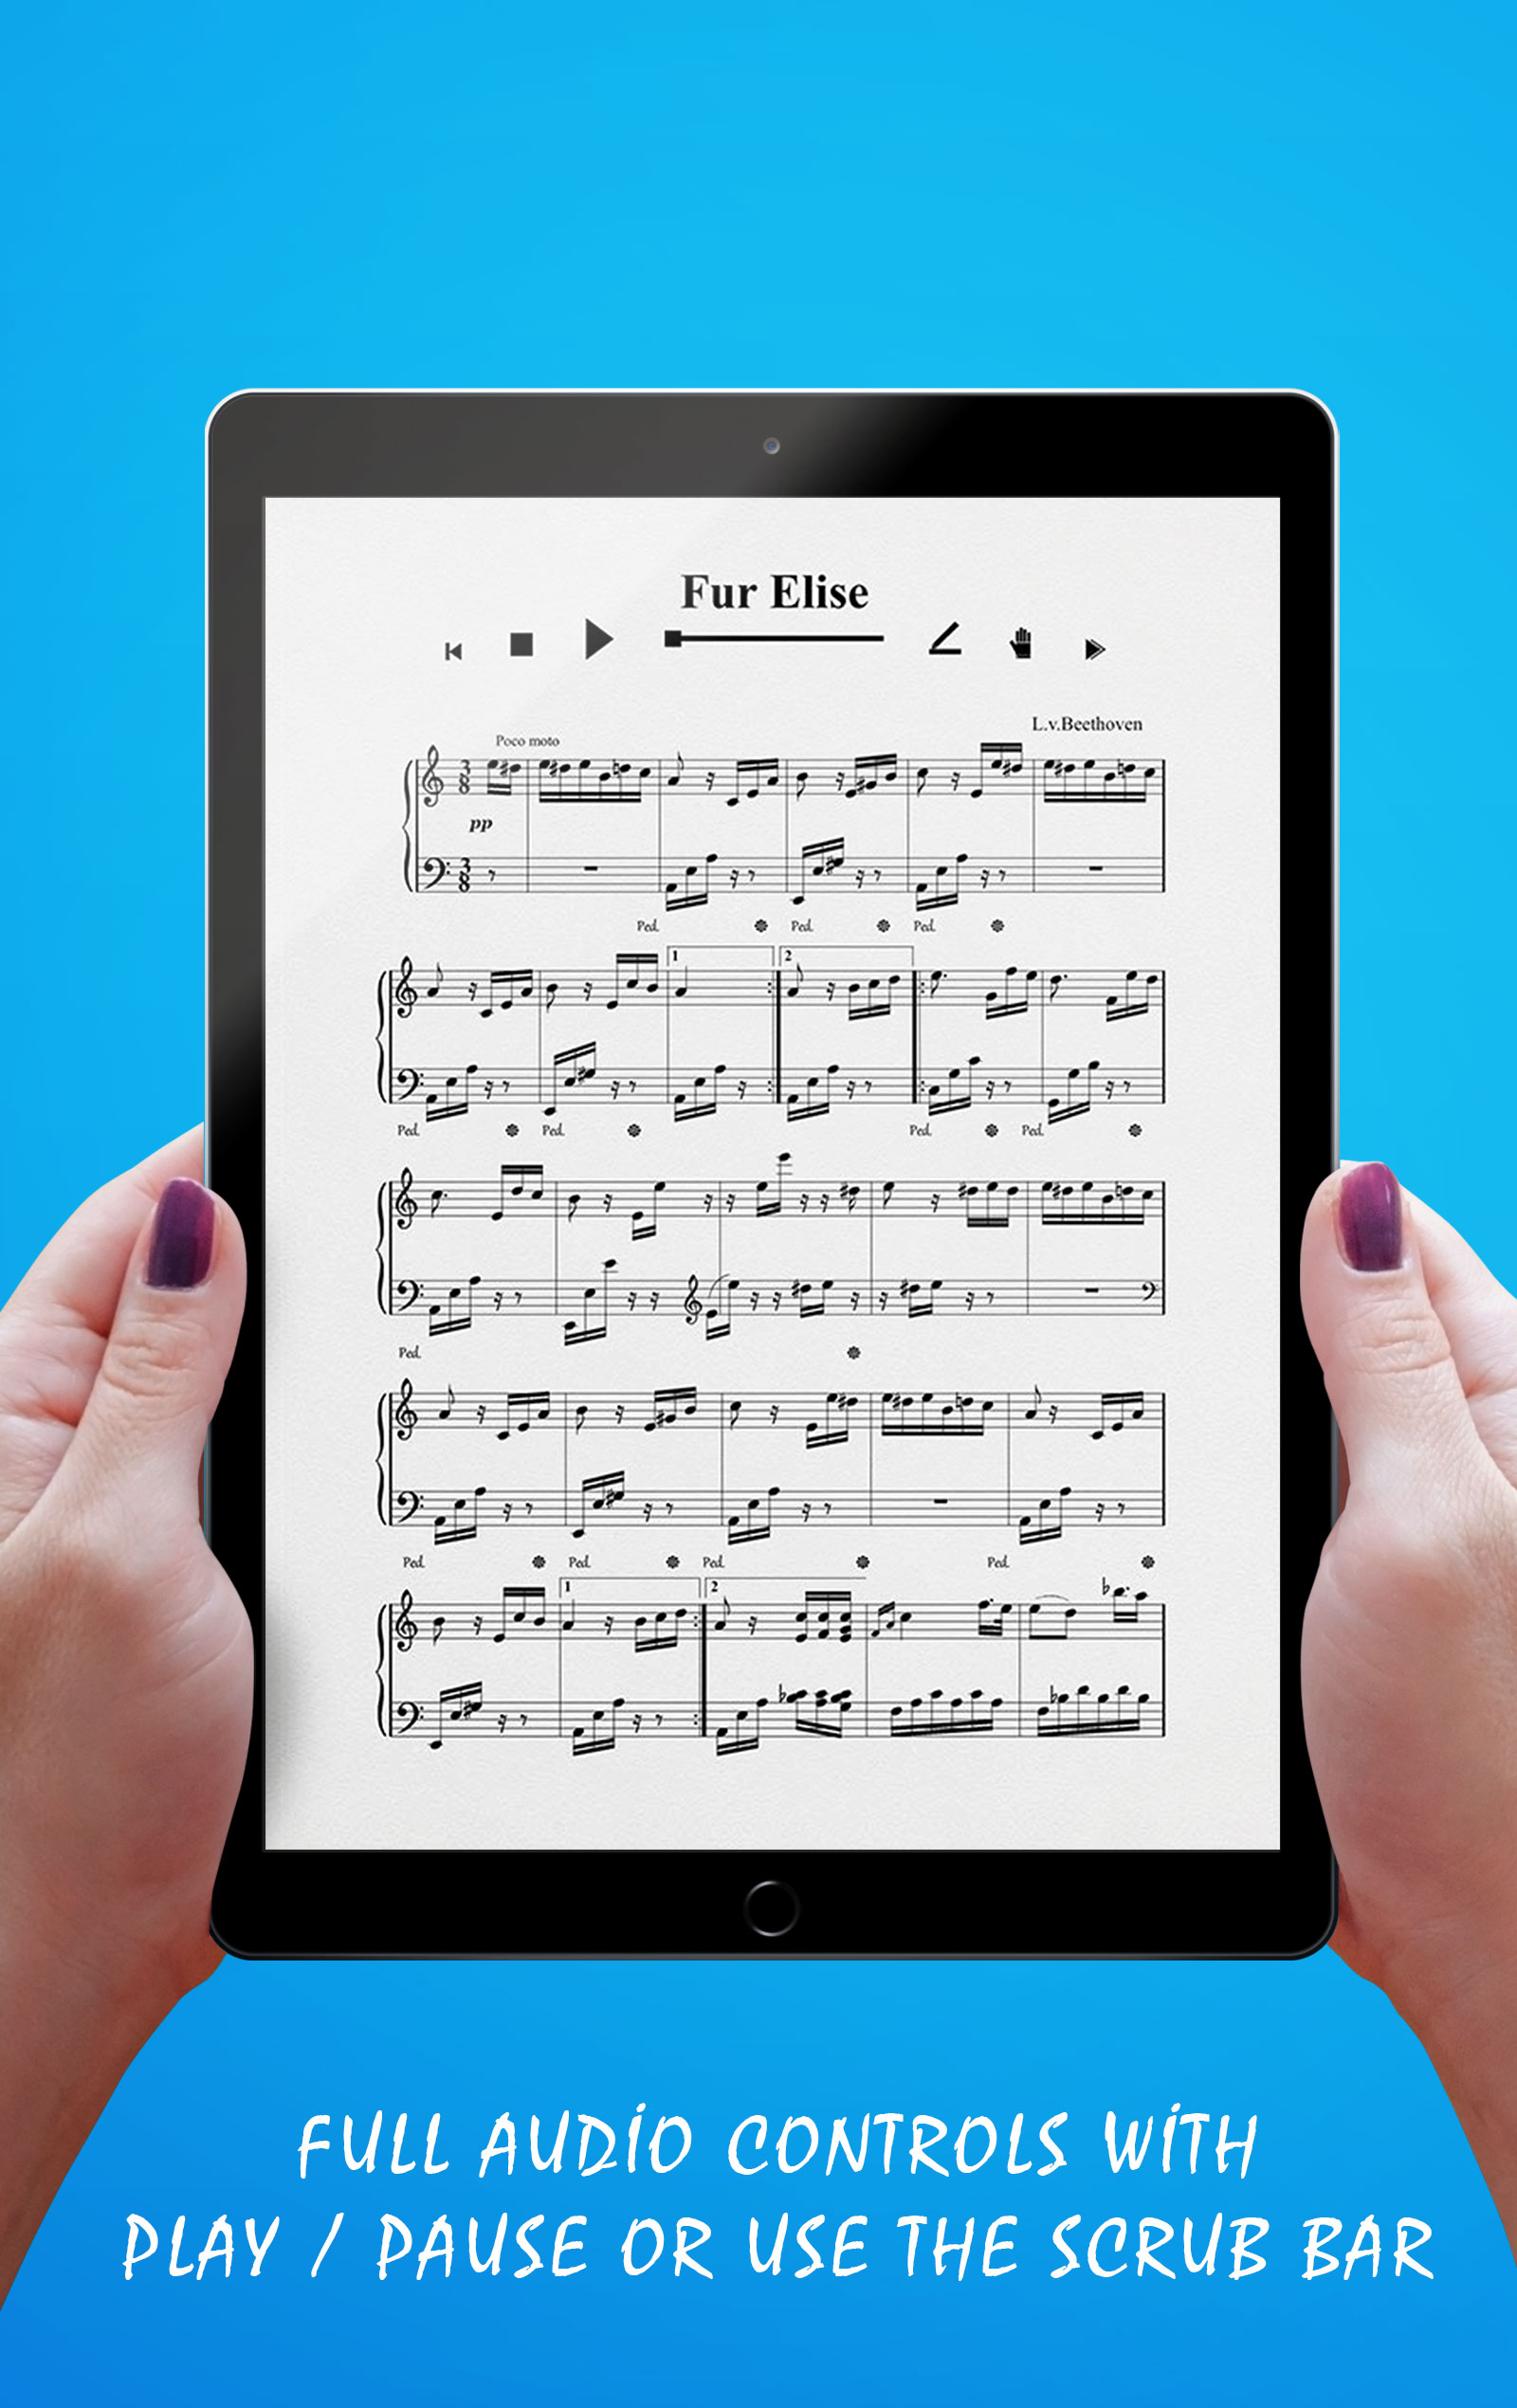 Fur Elise (Audio Controls)